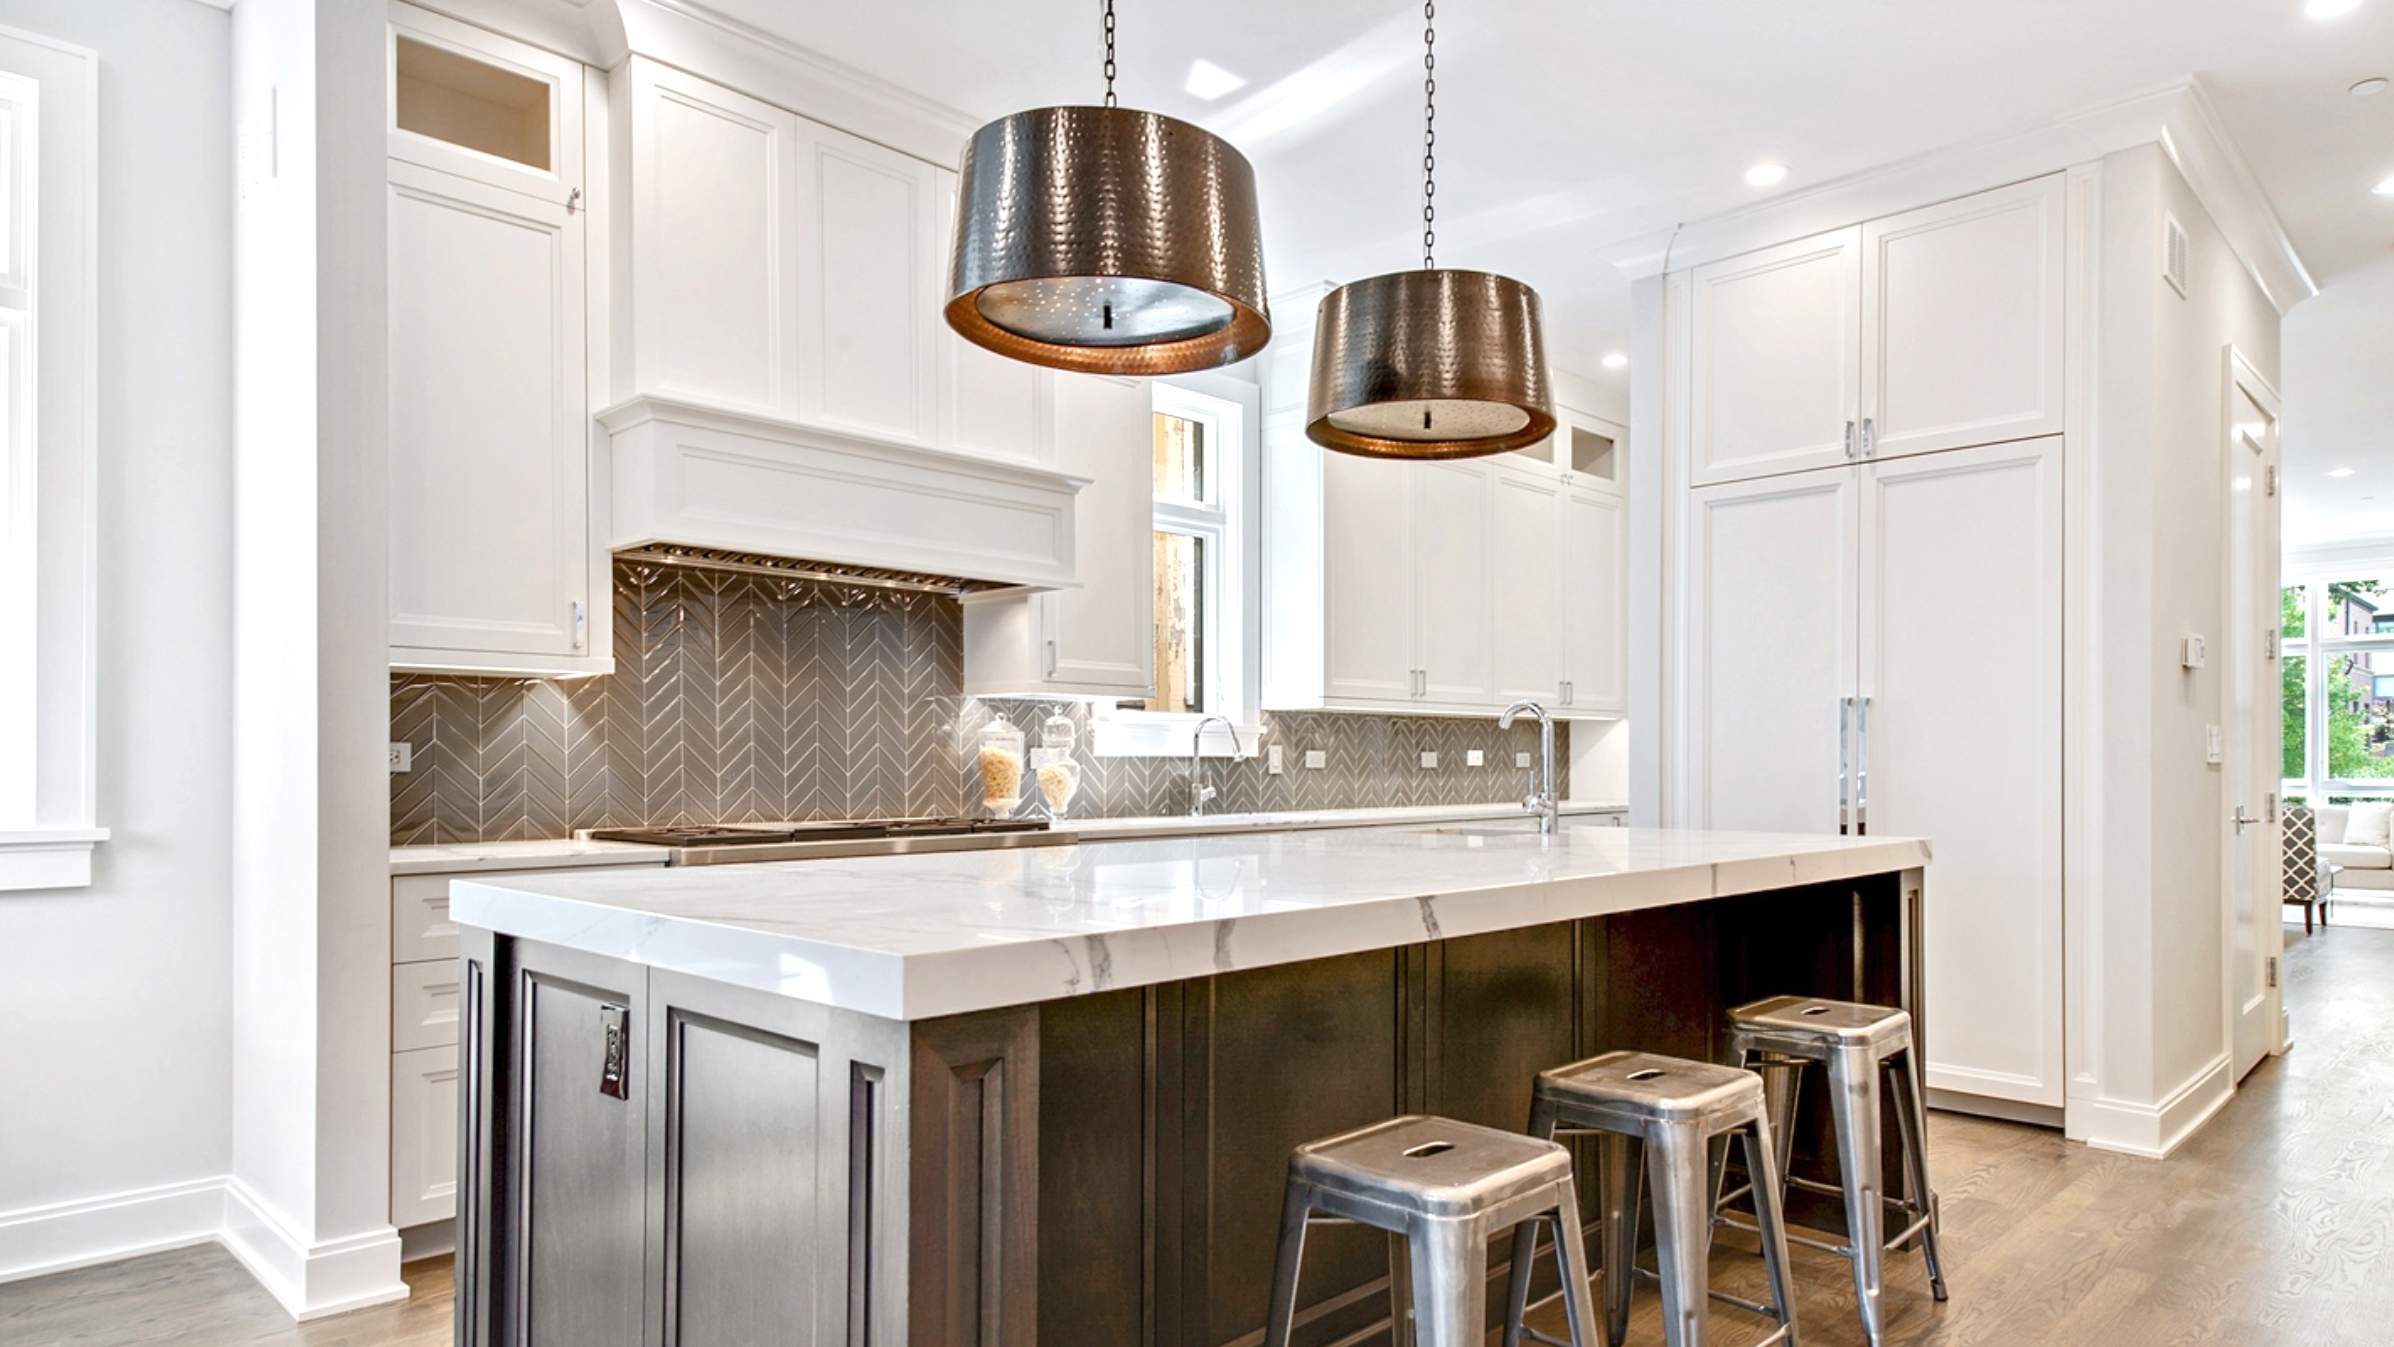 Kitchens Archives - Preview Chicago | Chicago Real Estate Entertainment